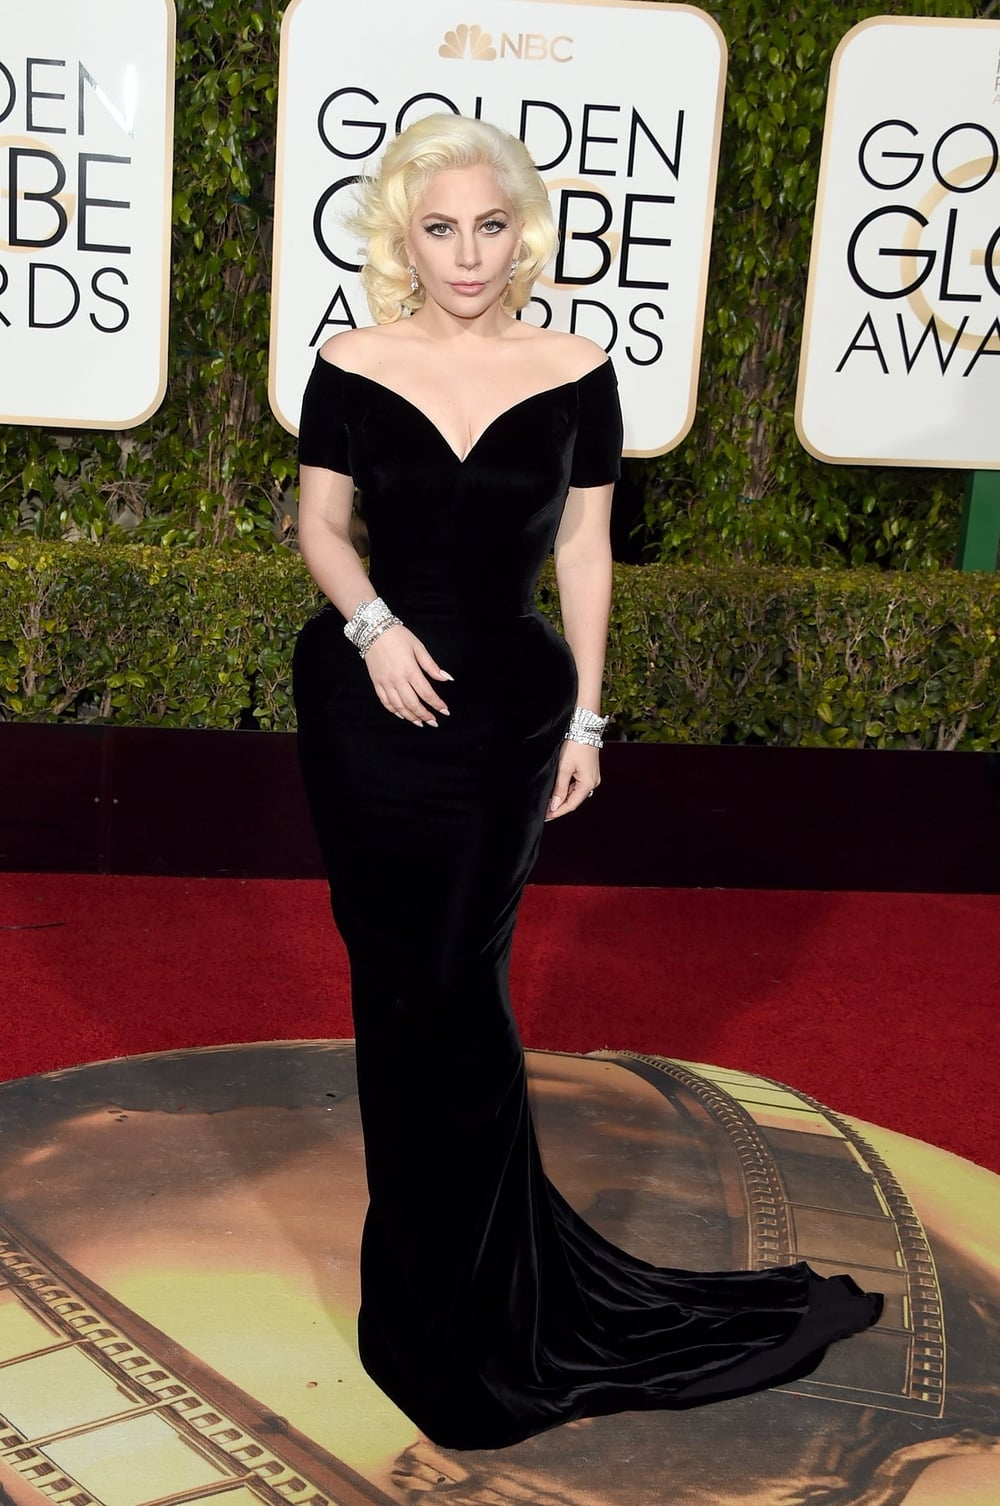 lady-gaga-golden-globes-2016.jpeg